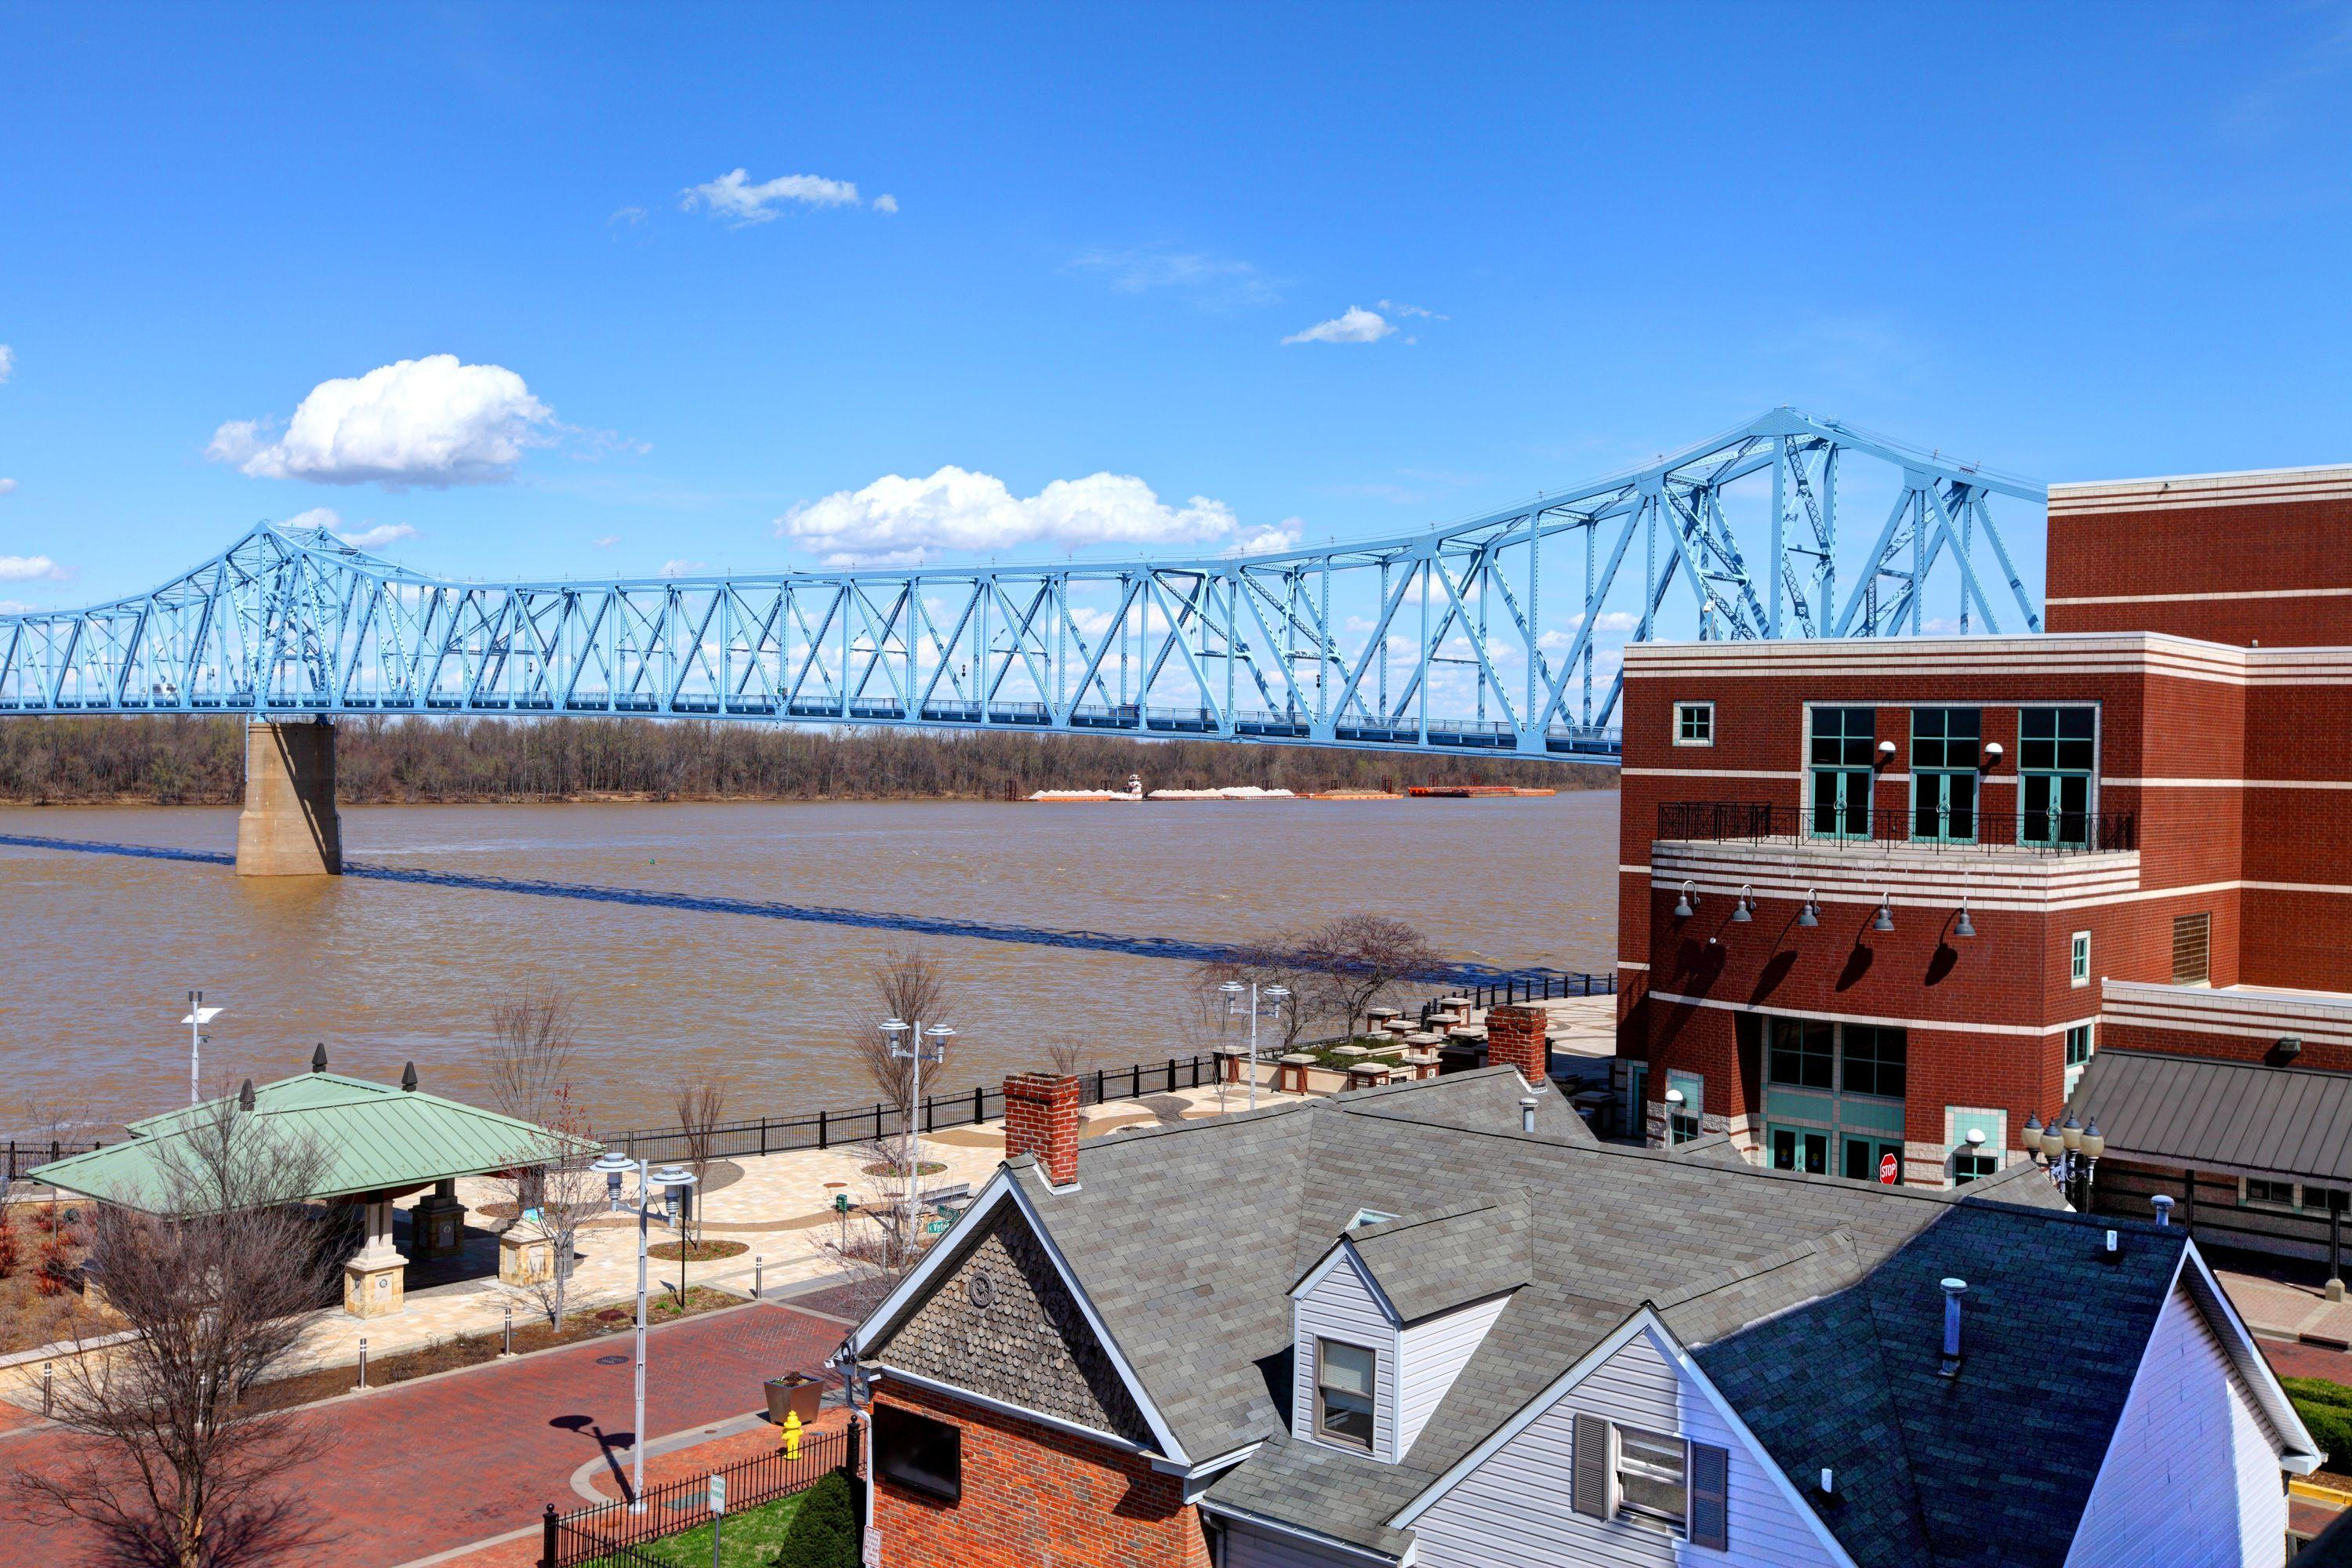 cheap flights to st louis stl search deals on airfare to st rh cheapflights com